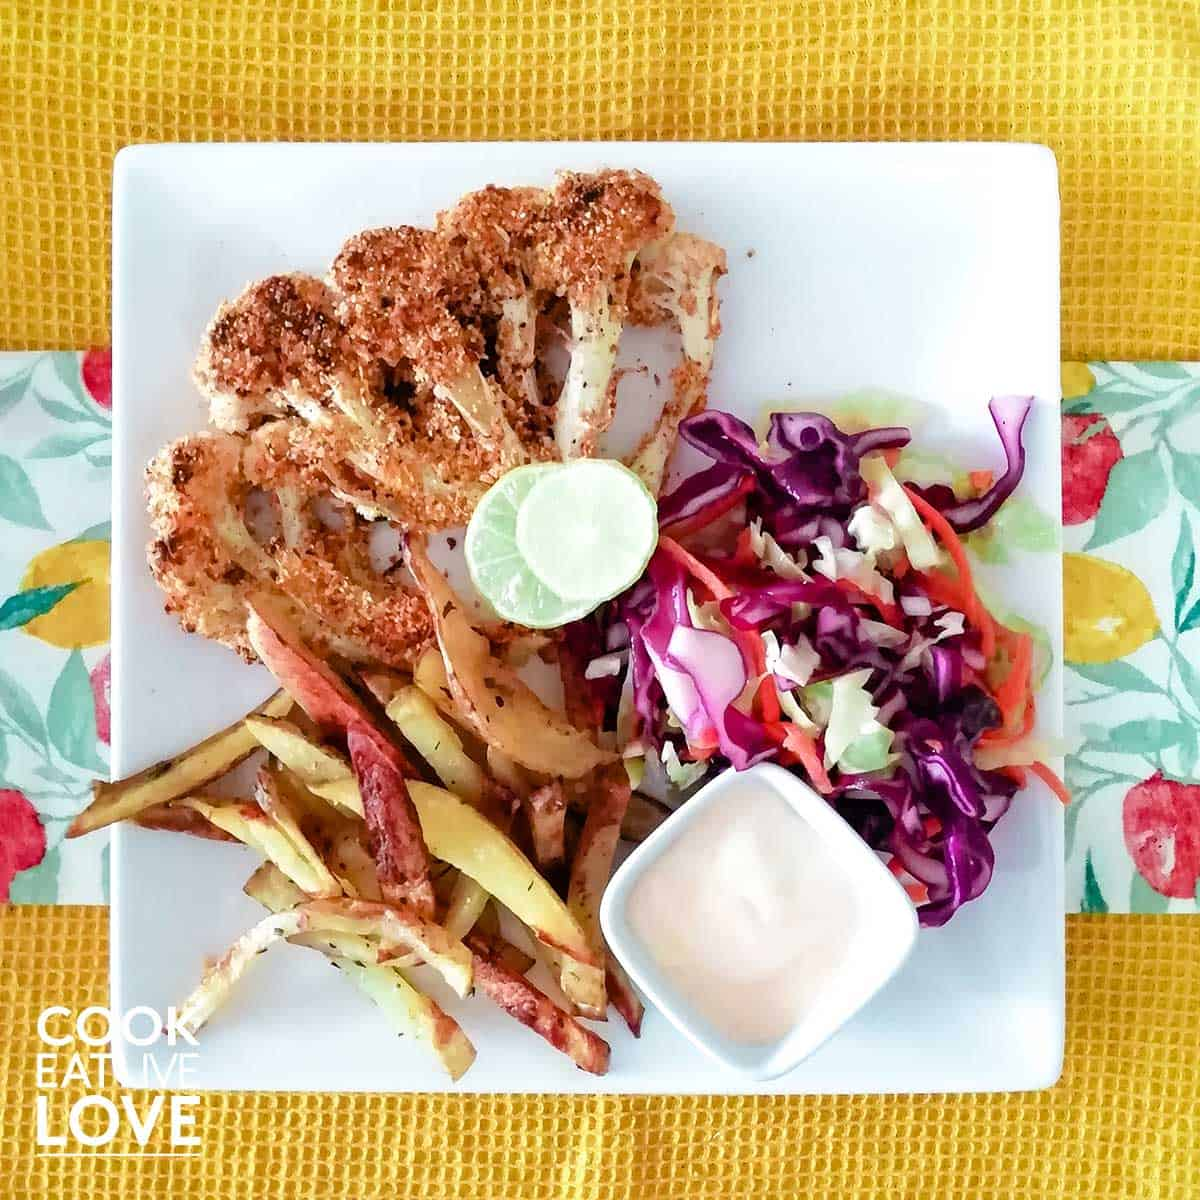 Plate of baked breaded cauliflower with fries and slaw.